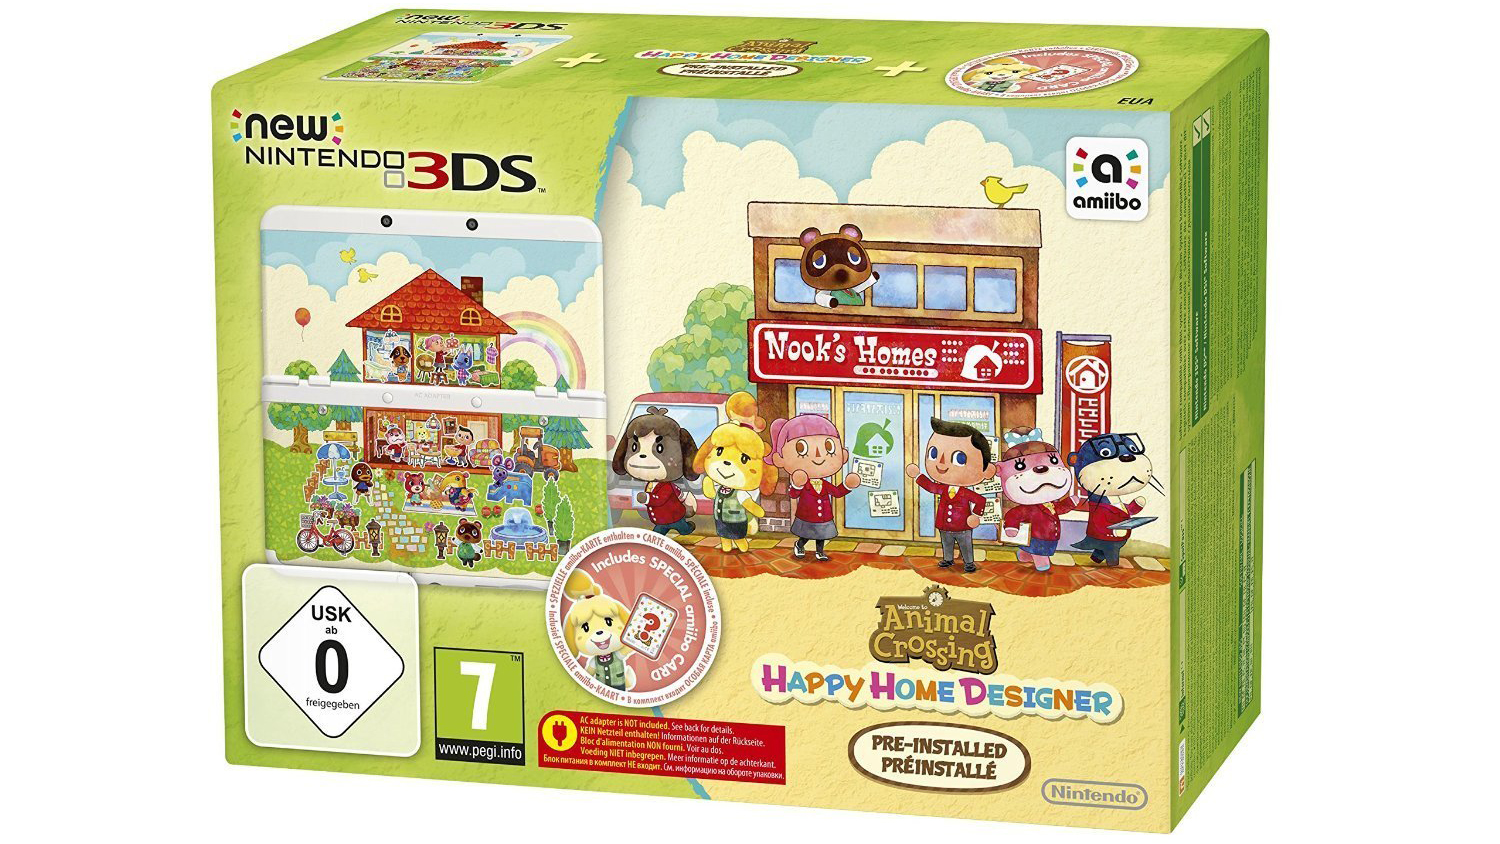 Pick up the New Nintendo 3DS with Happy Home Designer for only ...